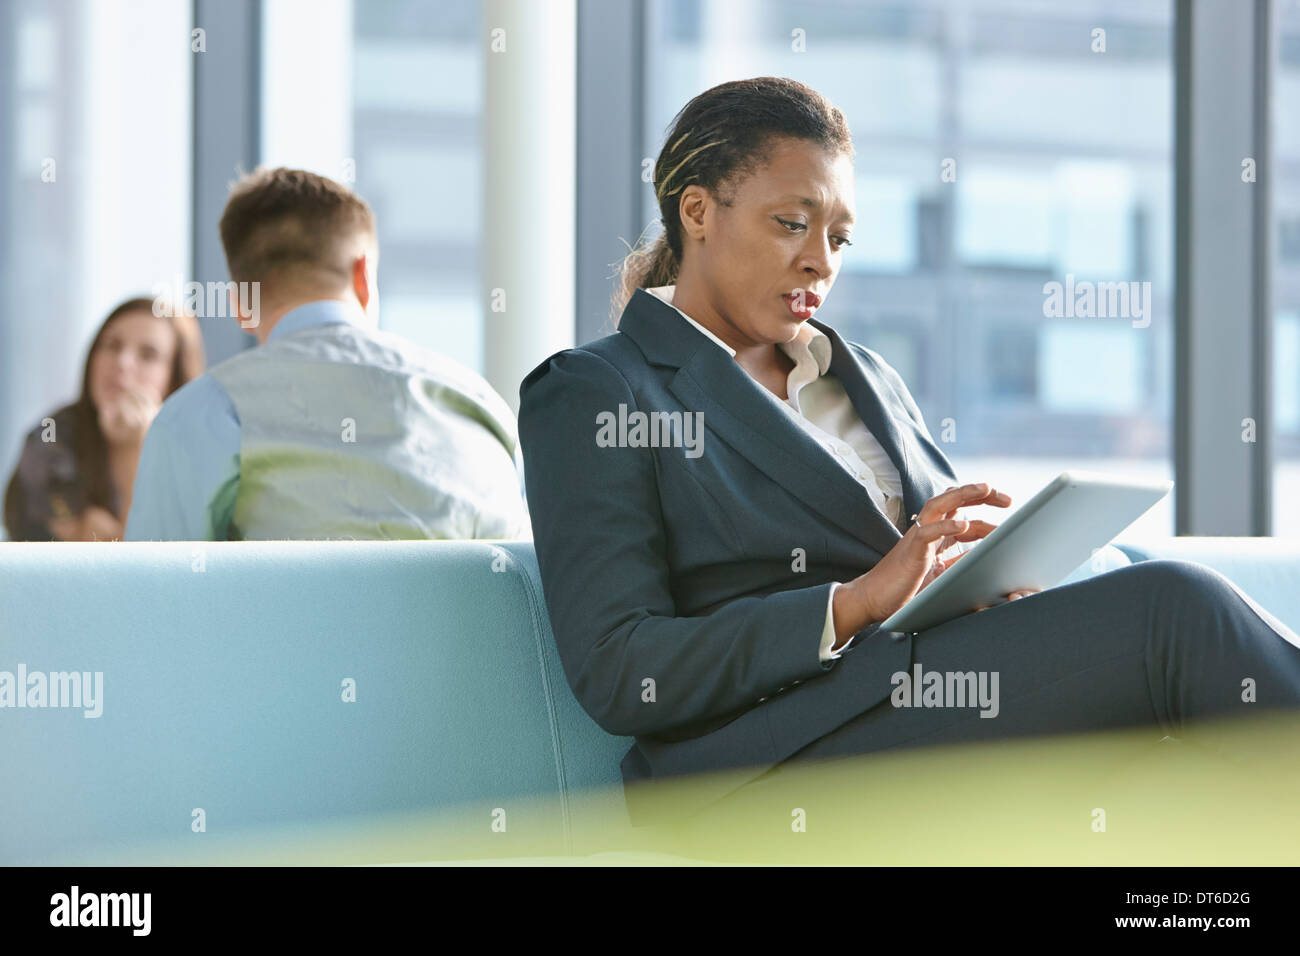 Businesswoman using digital tablet - Stock Image